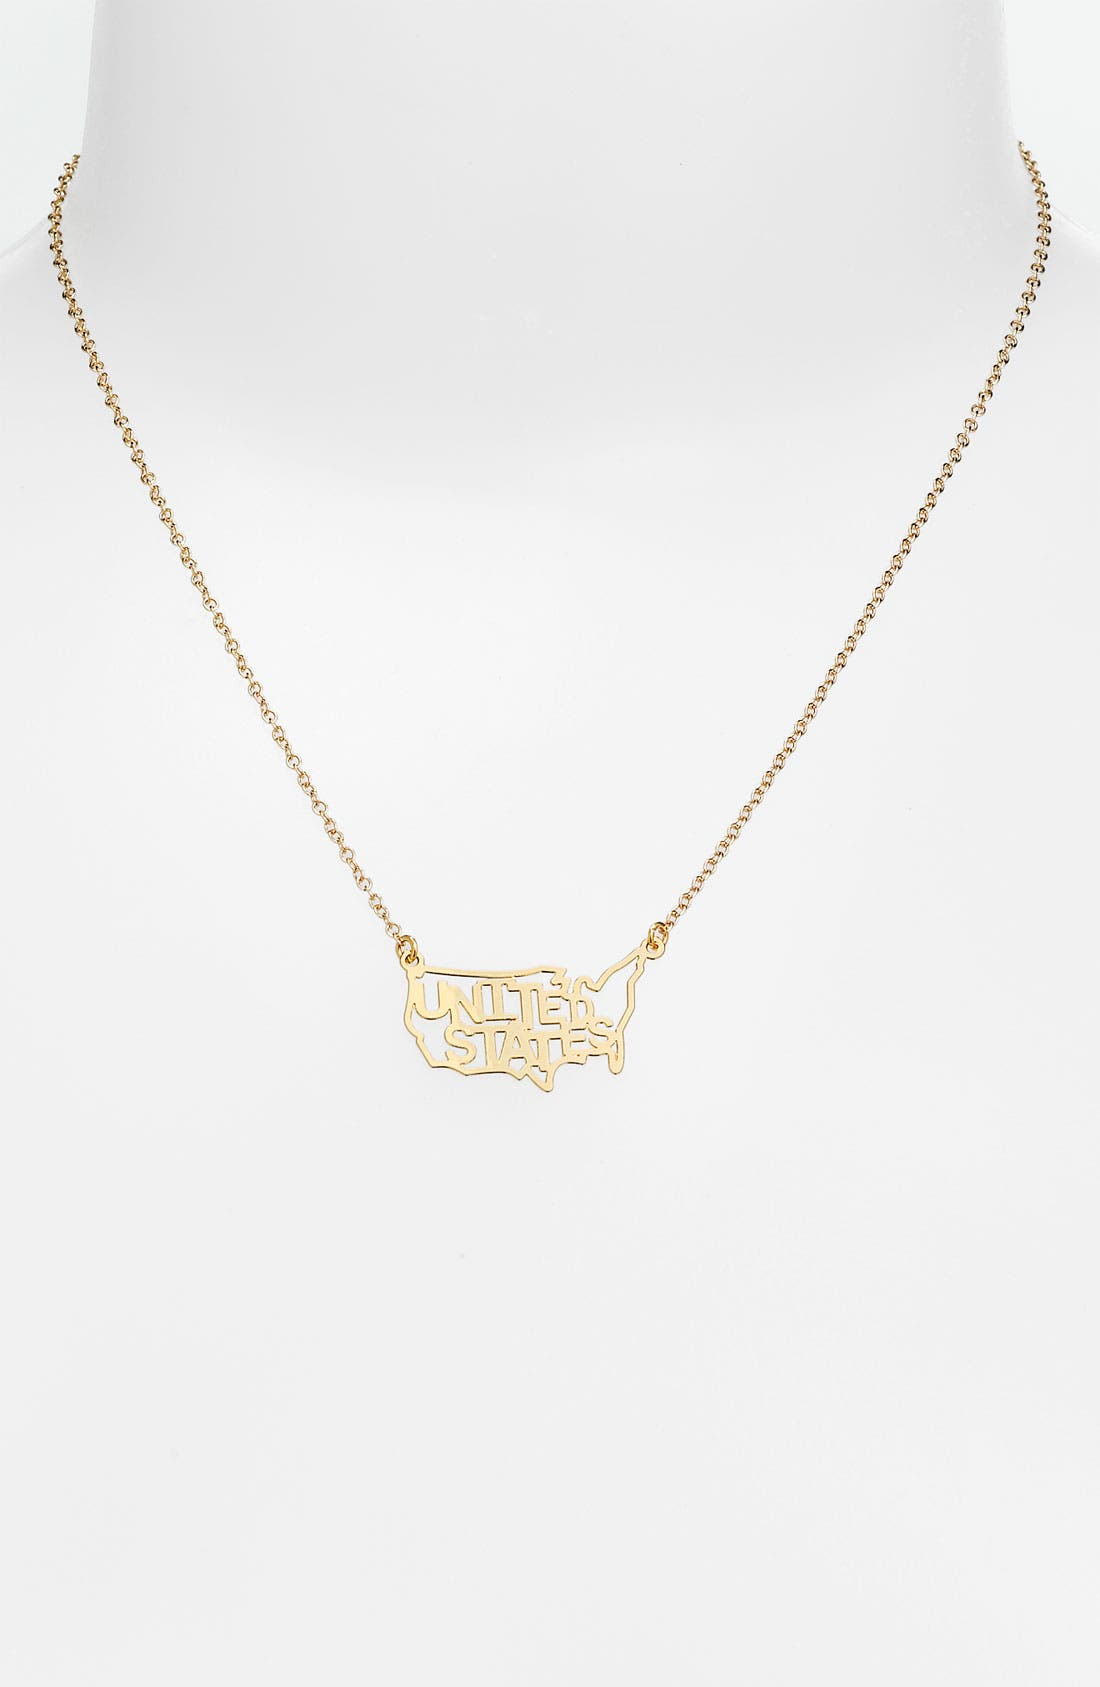 Main Image - Kris Nations 'USA' Necklace